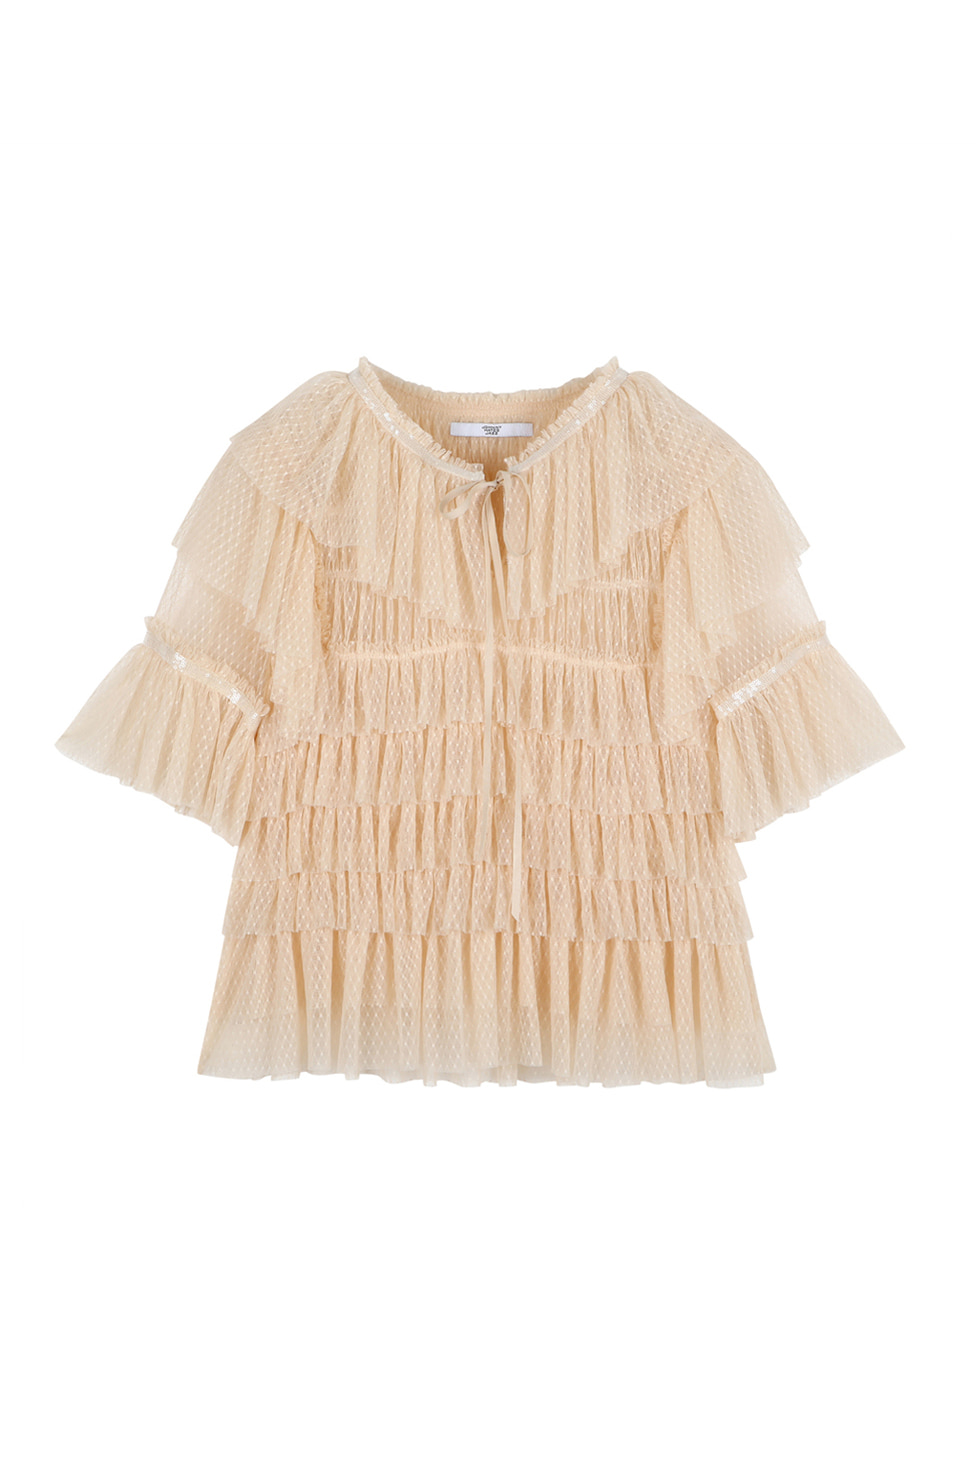 TULLED RUFFLE BLOUSE - BEIGE